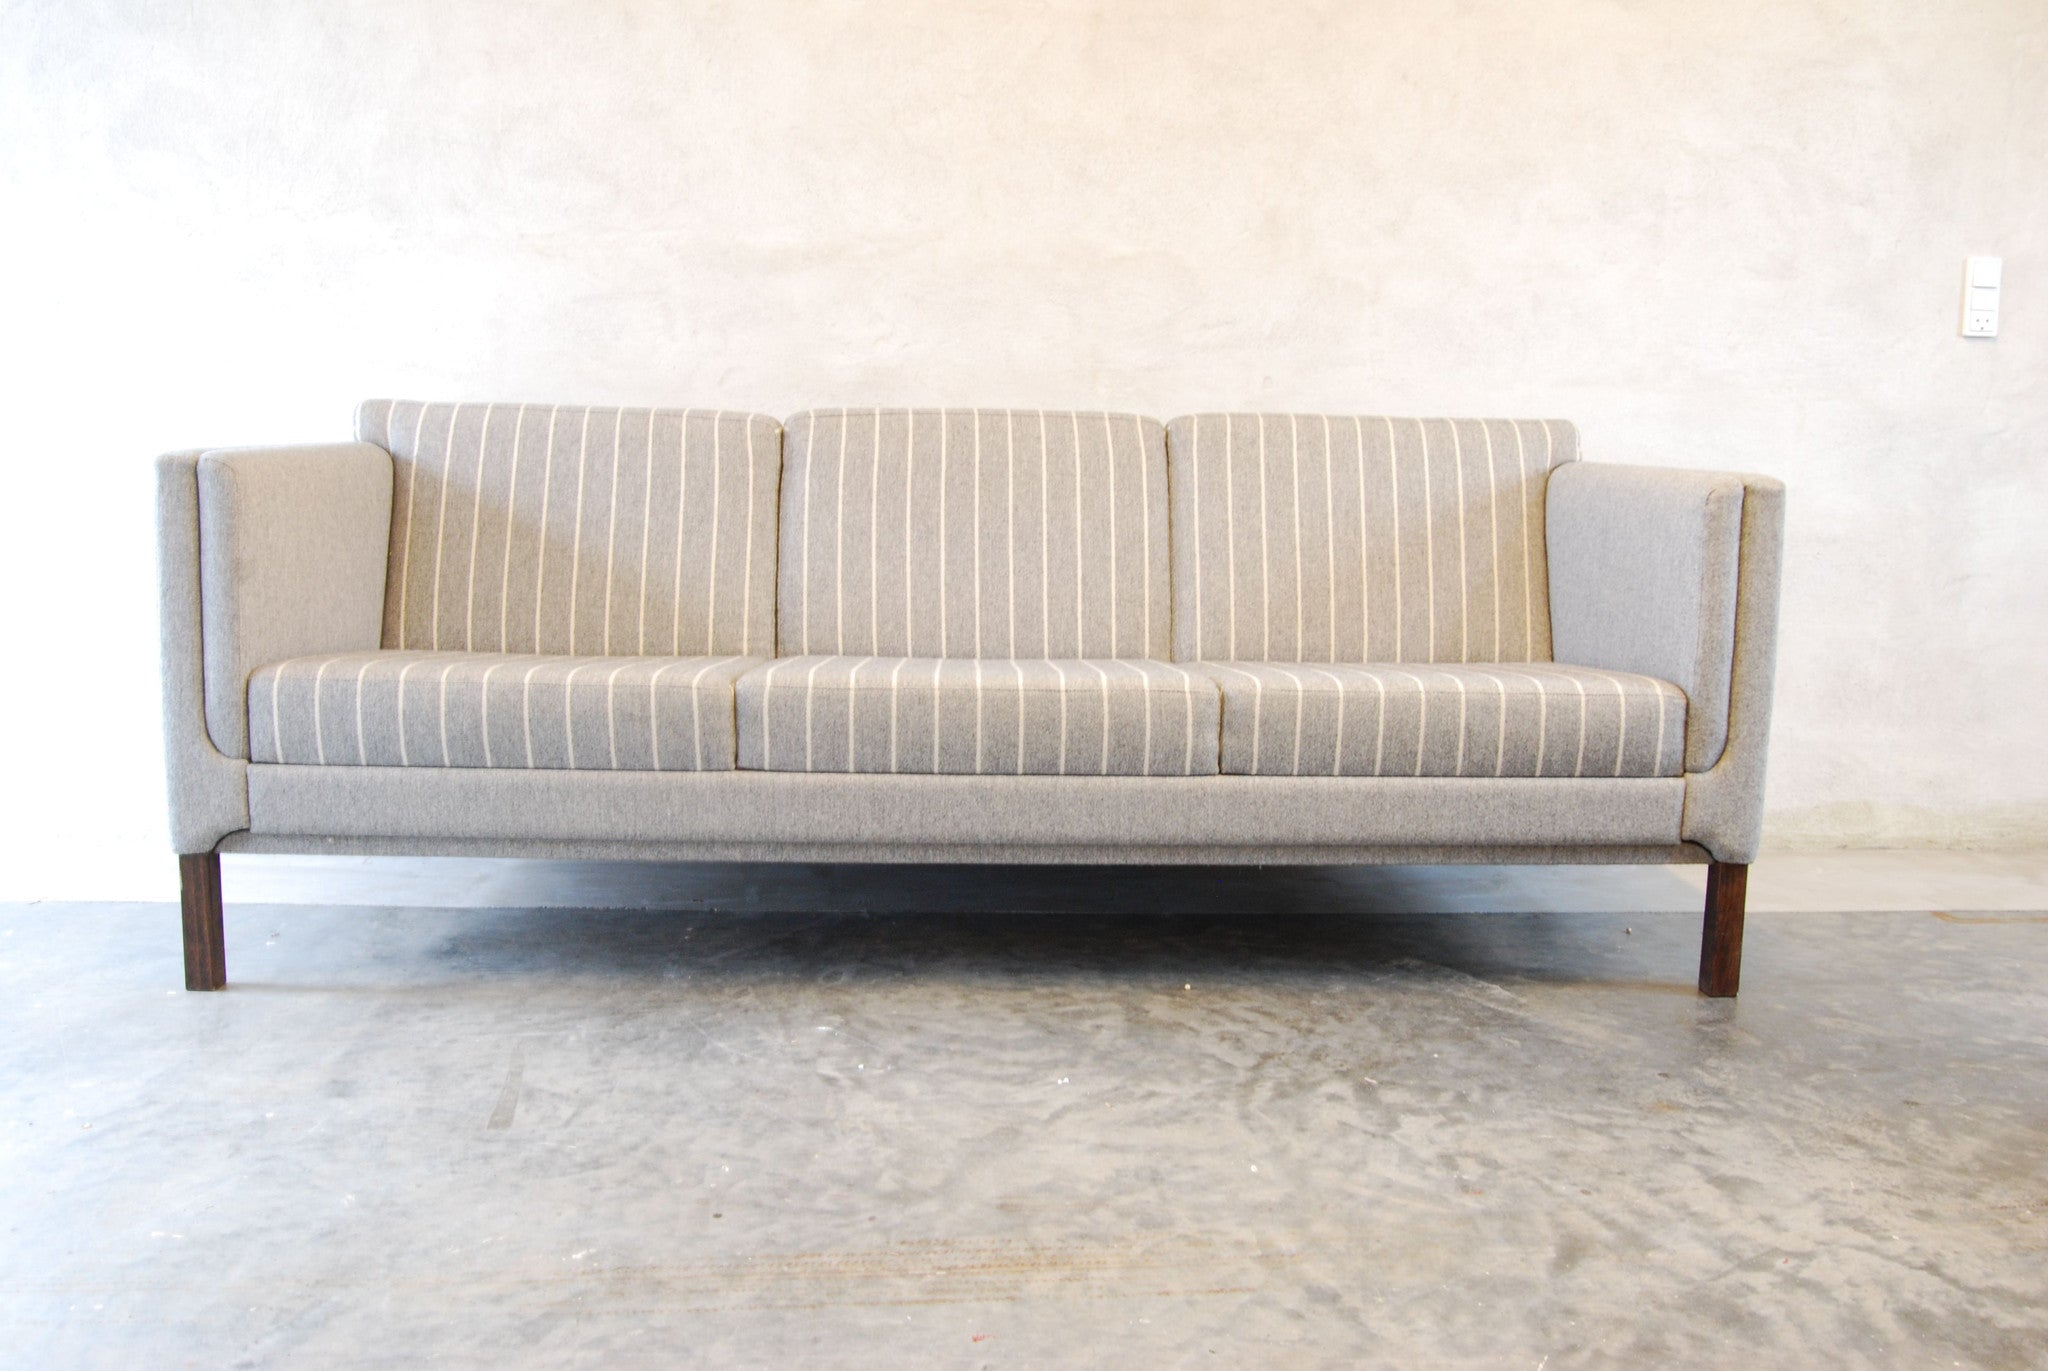 Three seater in gray/white stripes